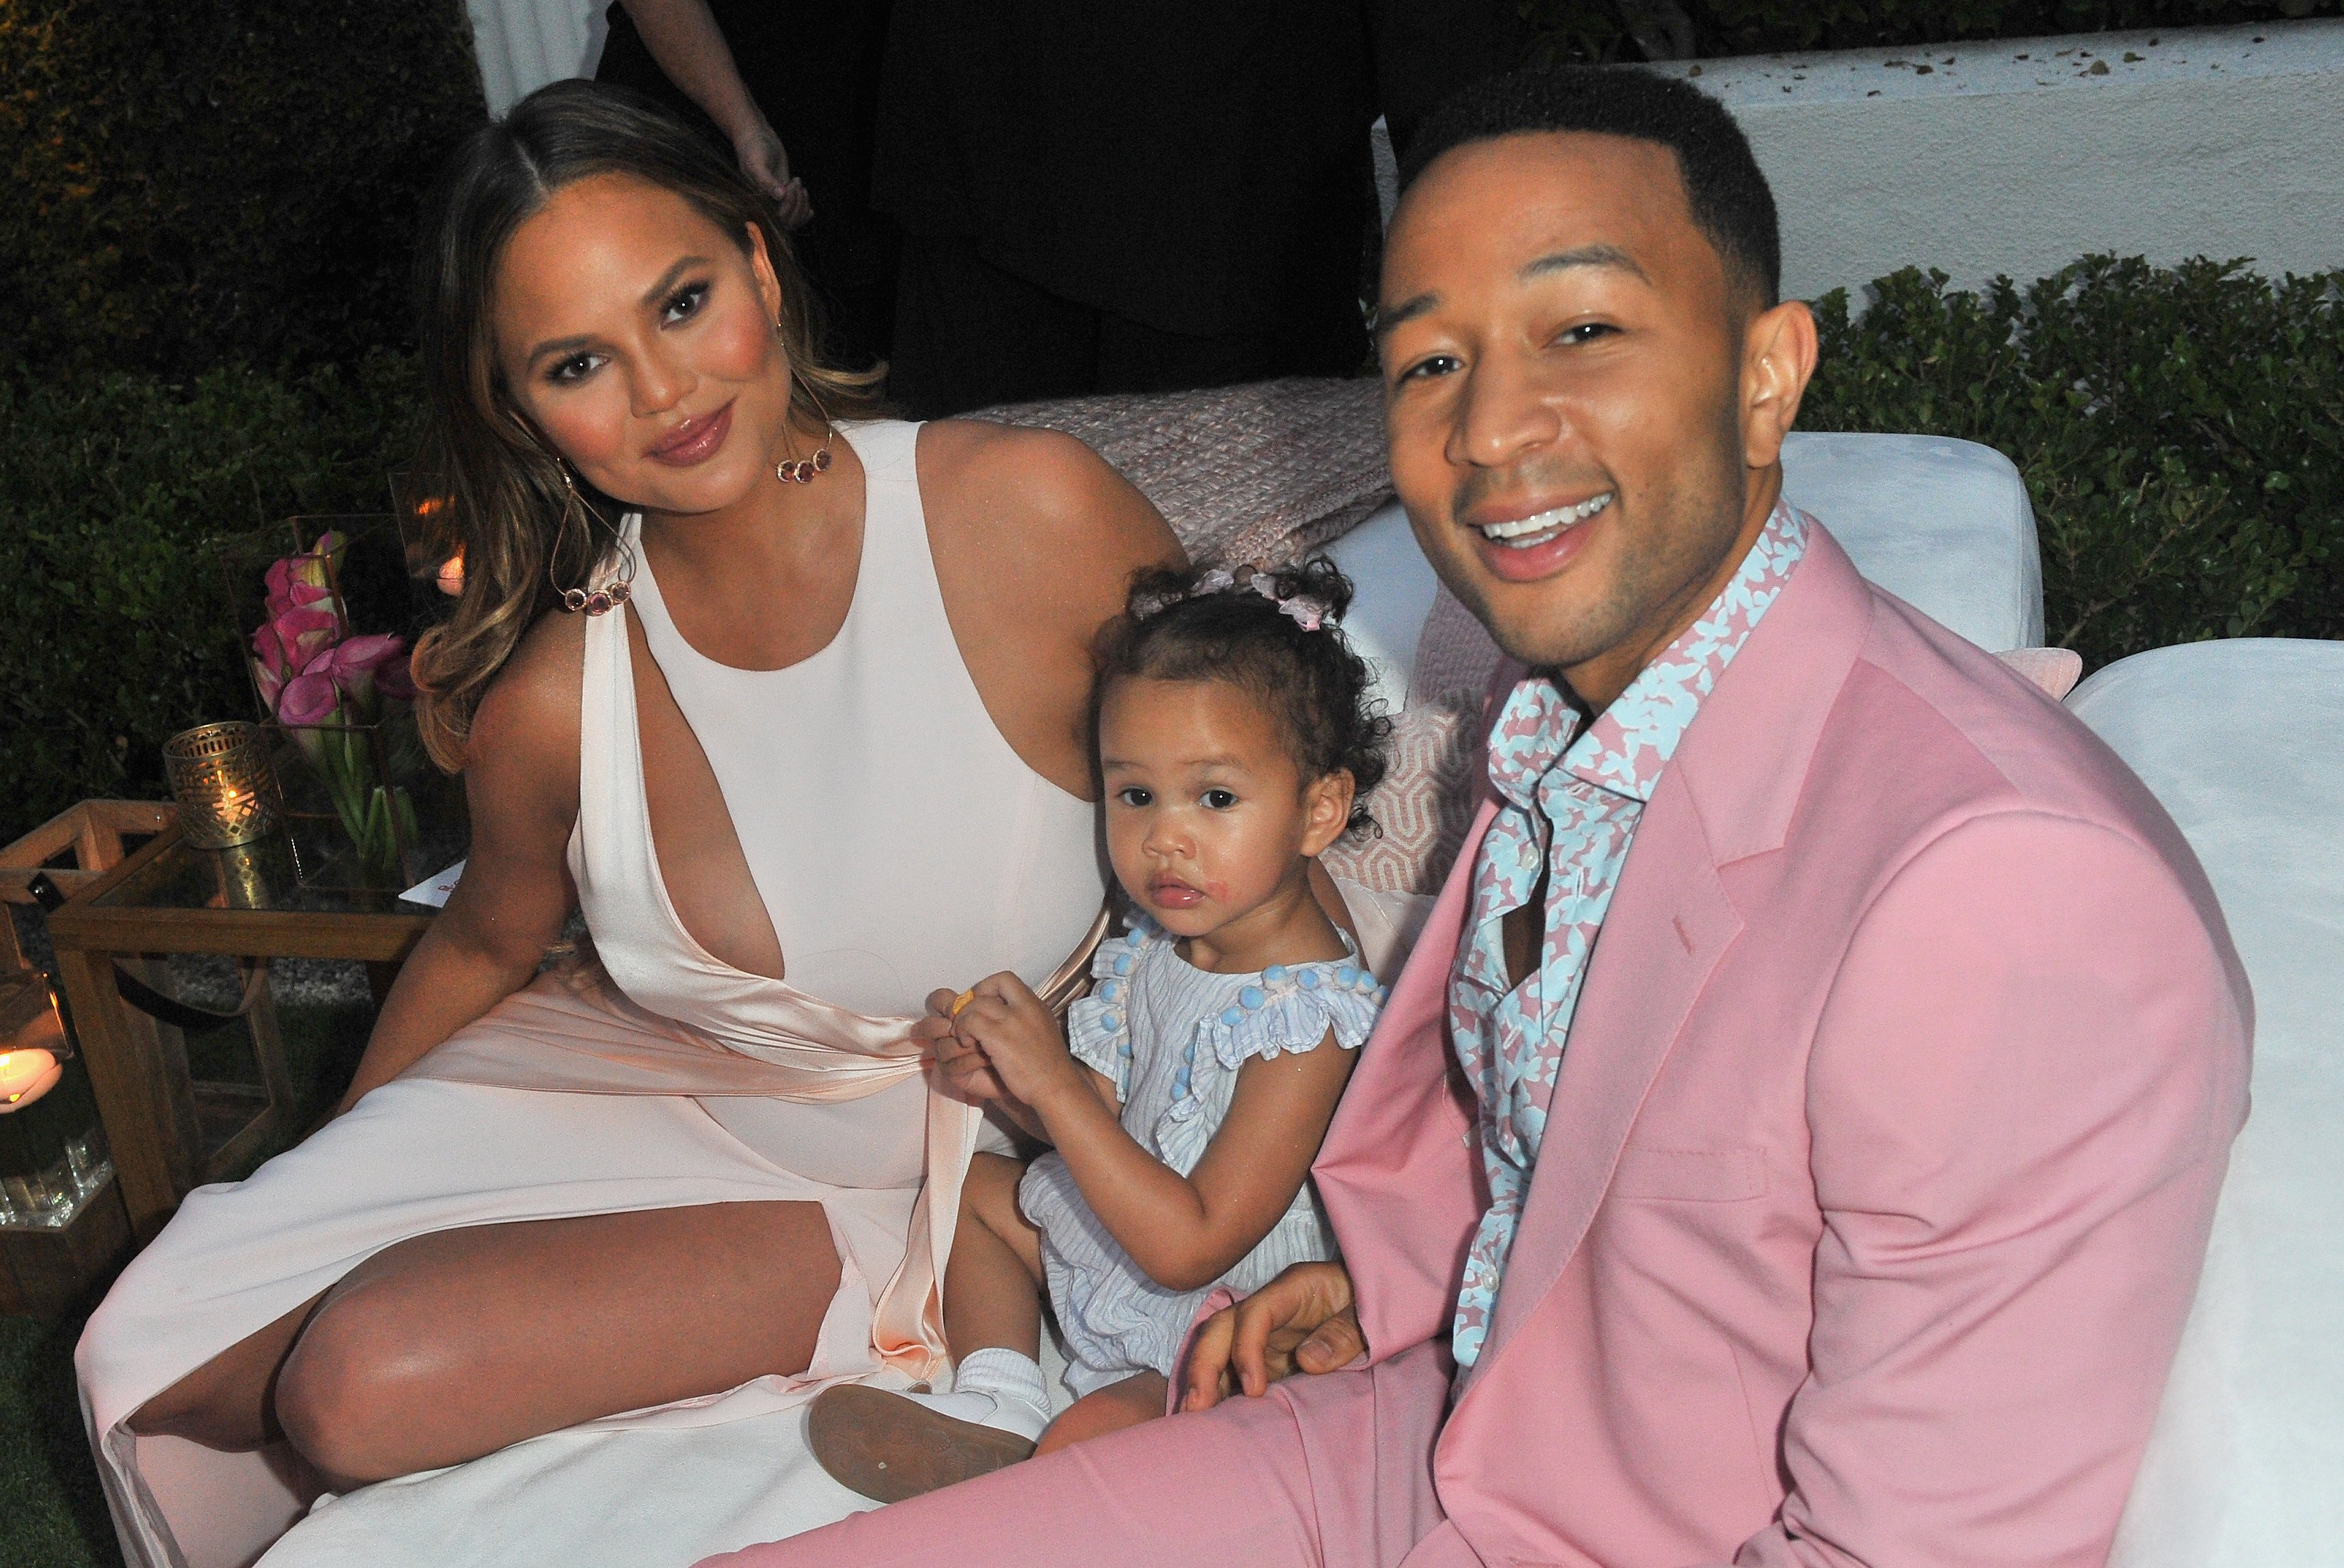 Chrissy Teigen, Luna Simone Stephens and John Legend attend John Legend's launch of his new rose wine brand | Source: Getty Images